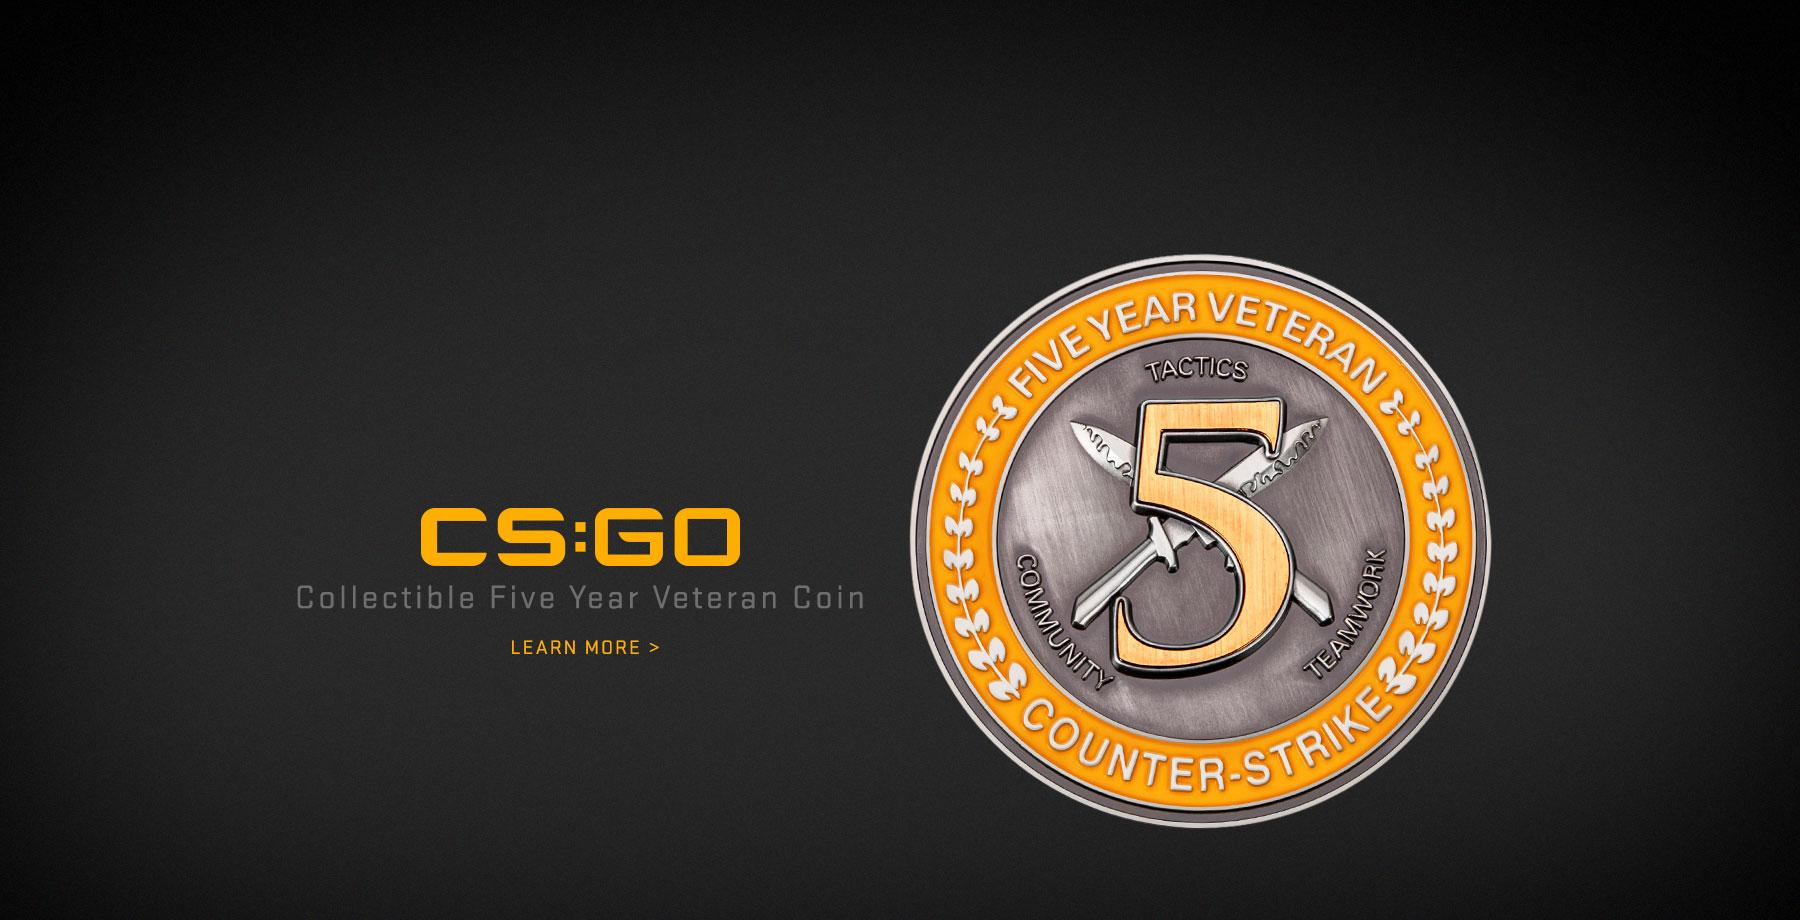 CSGO COLLECTIBLE COIN